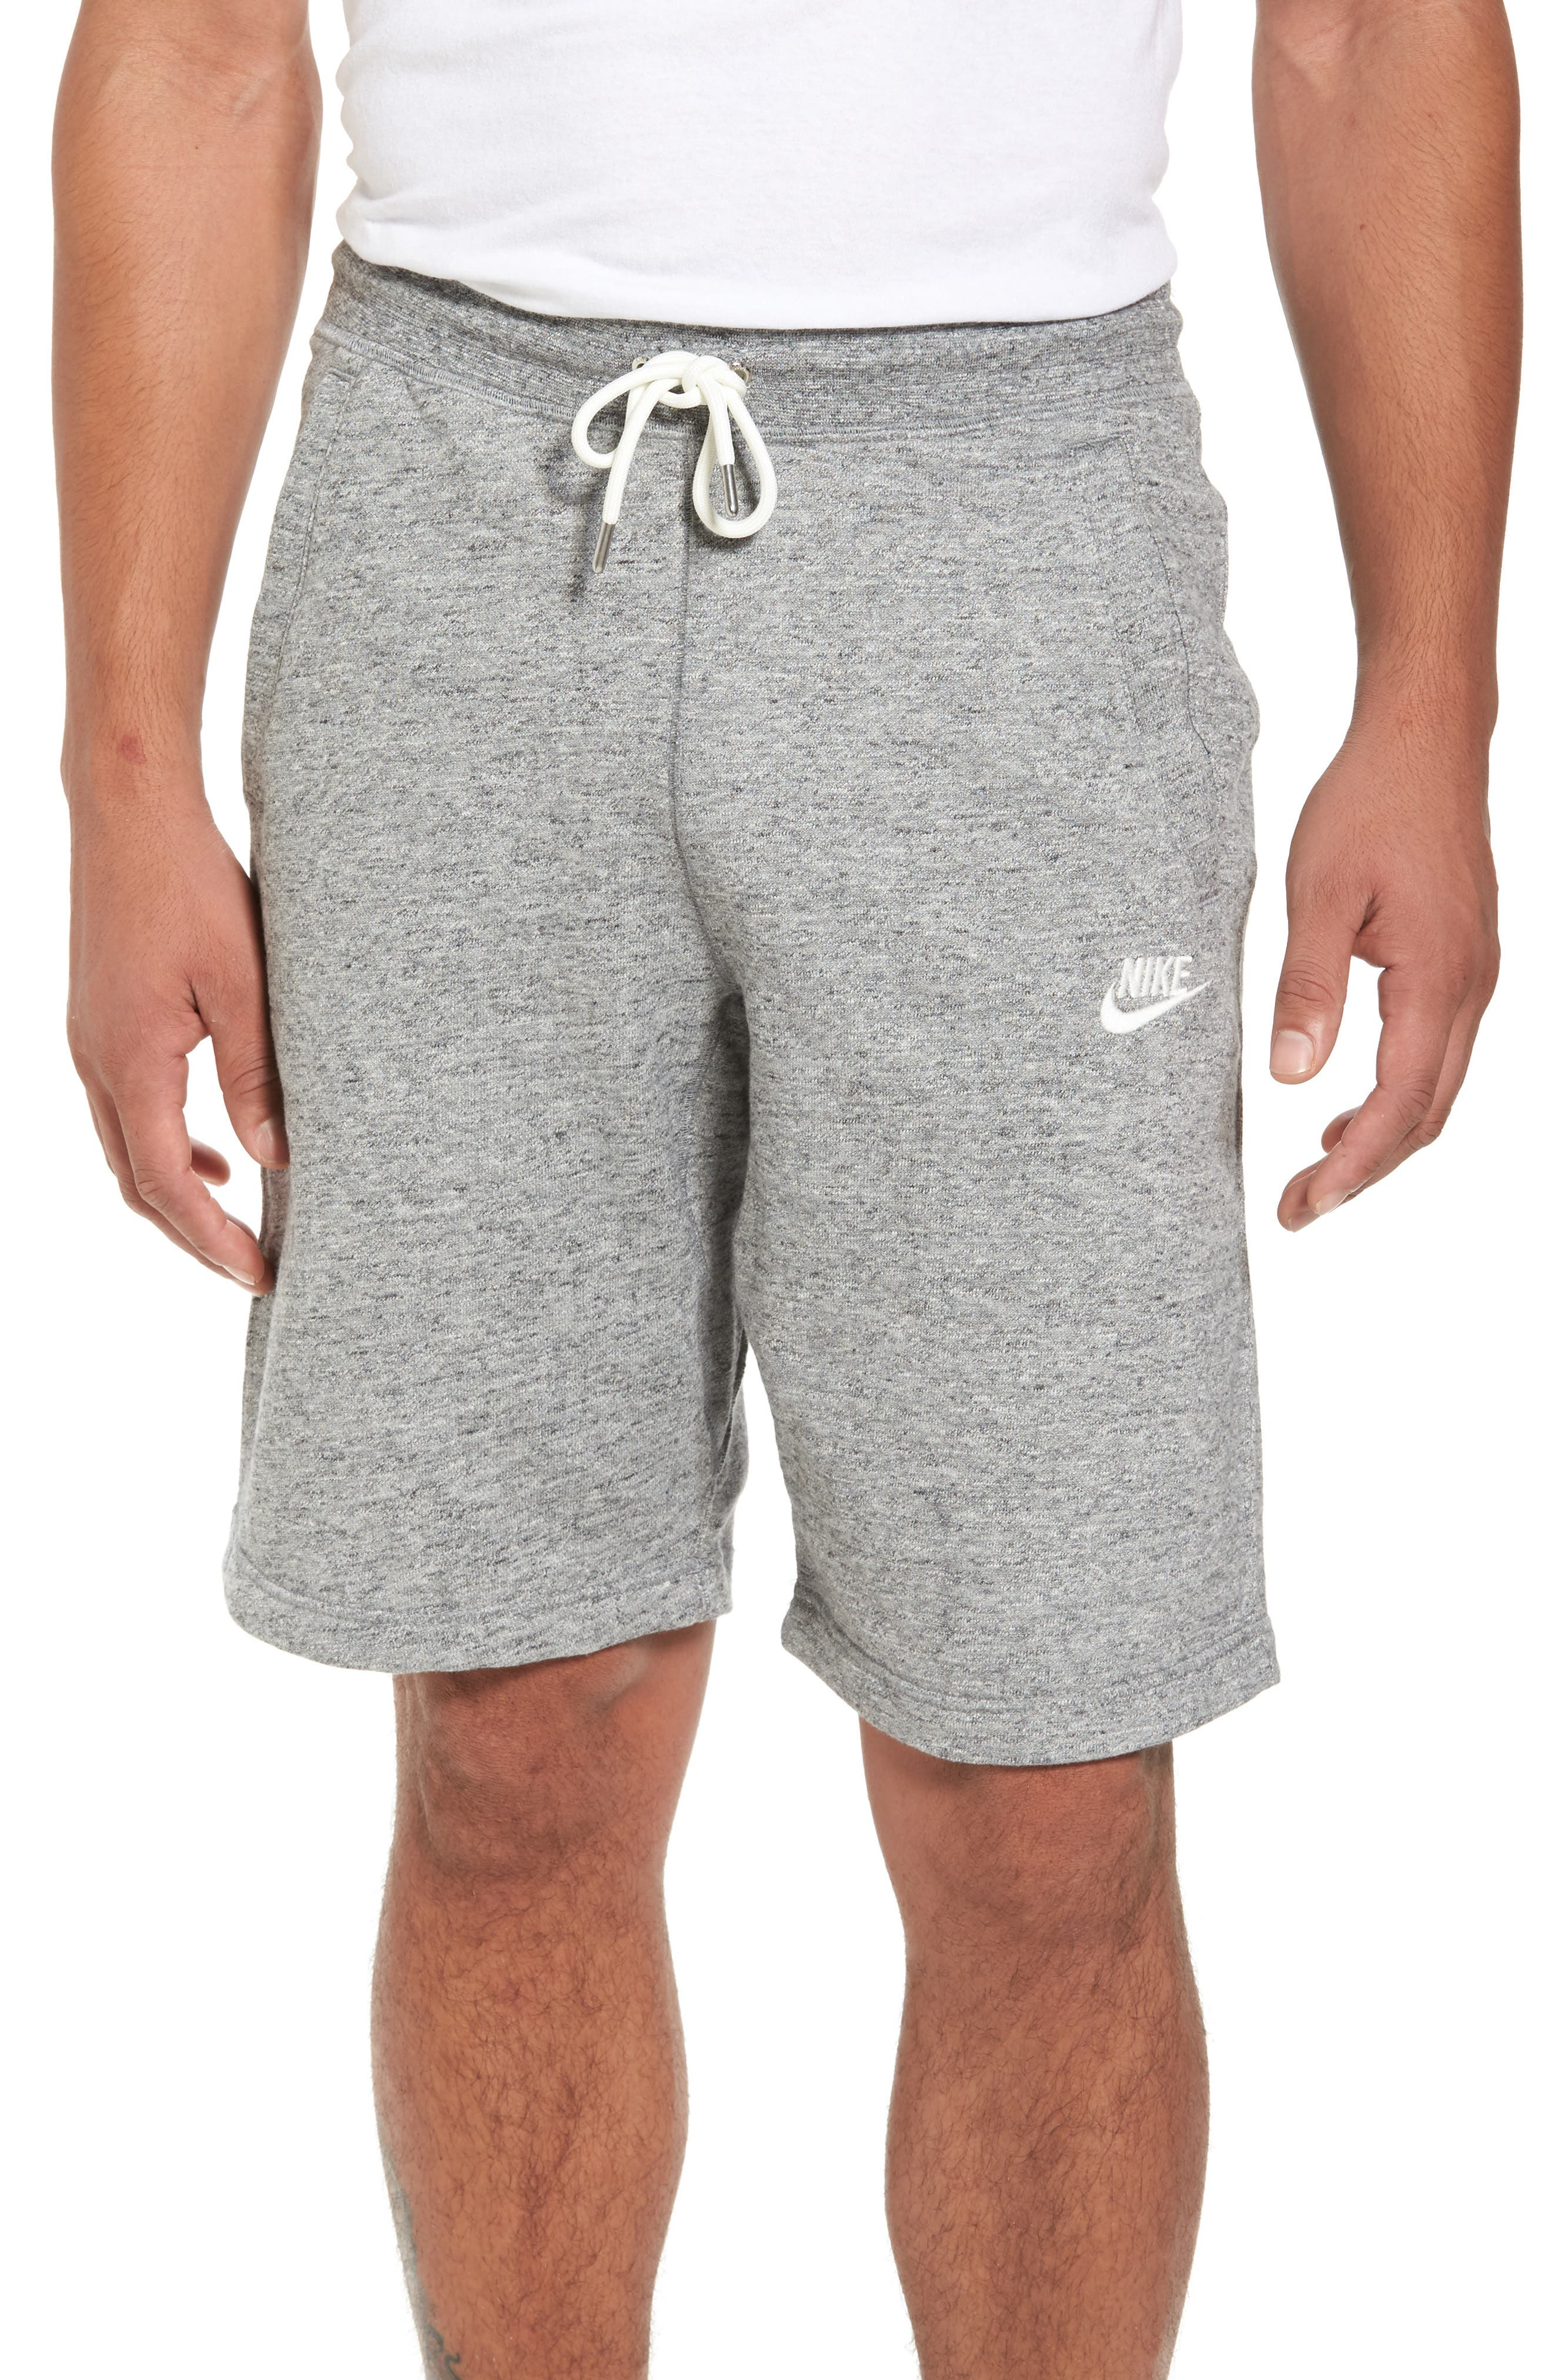 Legacy Knit Shorts,                         Main,                         color, Carbon Heather/ Sail